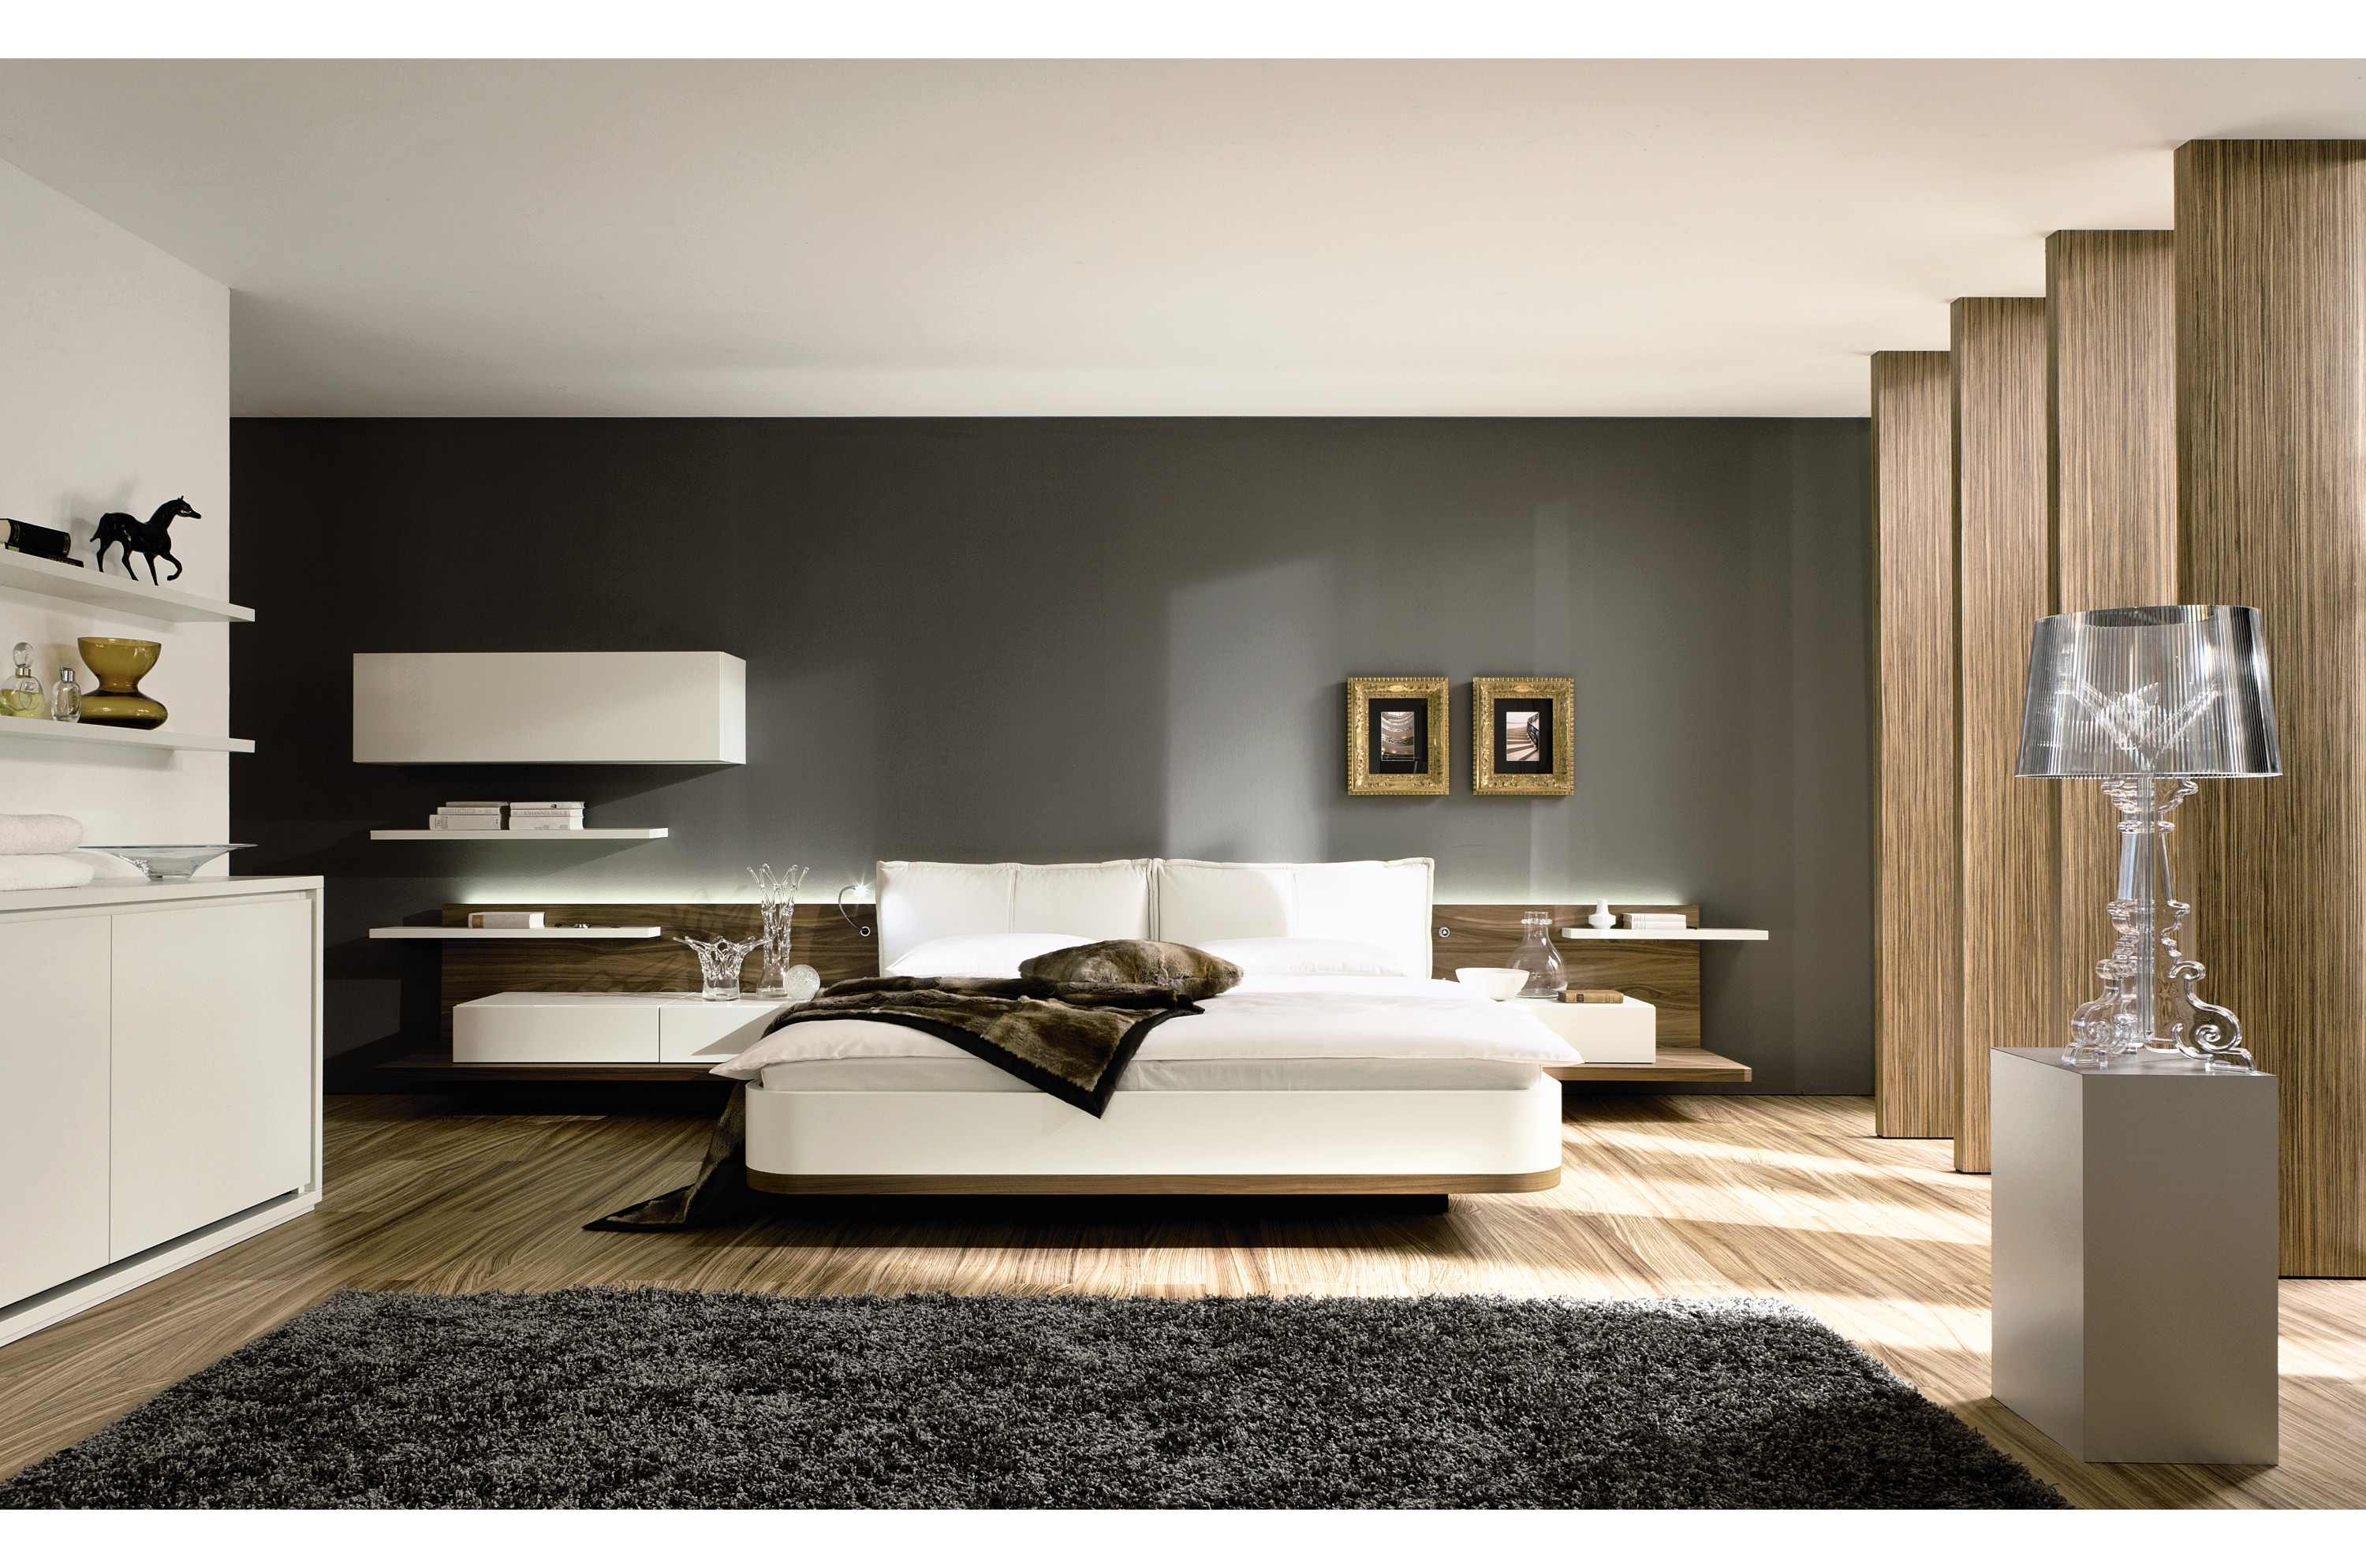 Modern bedroom innovation bedroom ideas interior design for New bedroom decorating ideas